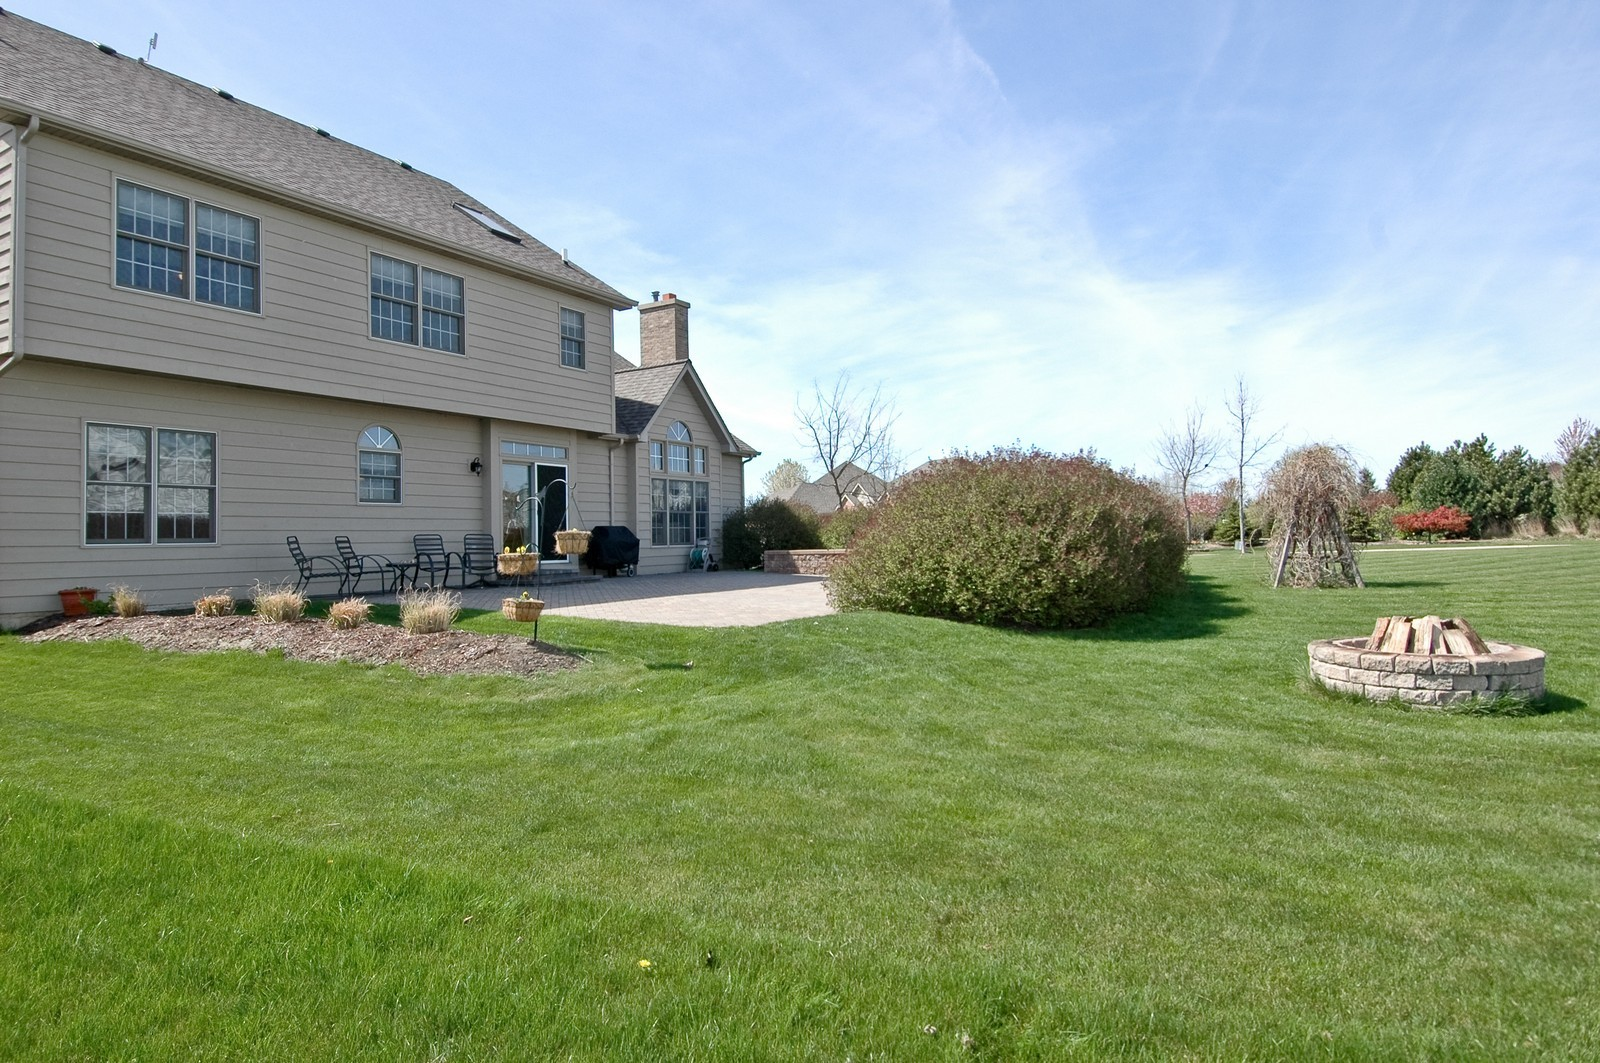 Real Estate Photography - 491 Clover, Algonquin, IL, 60102 - Rear View